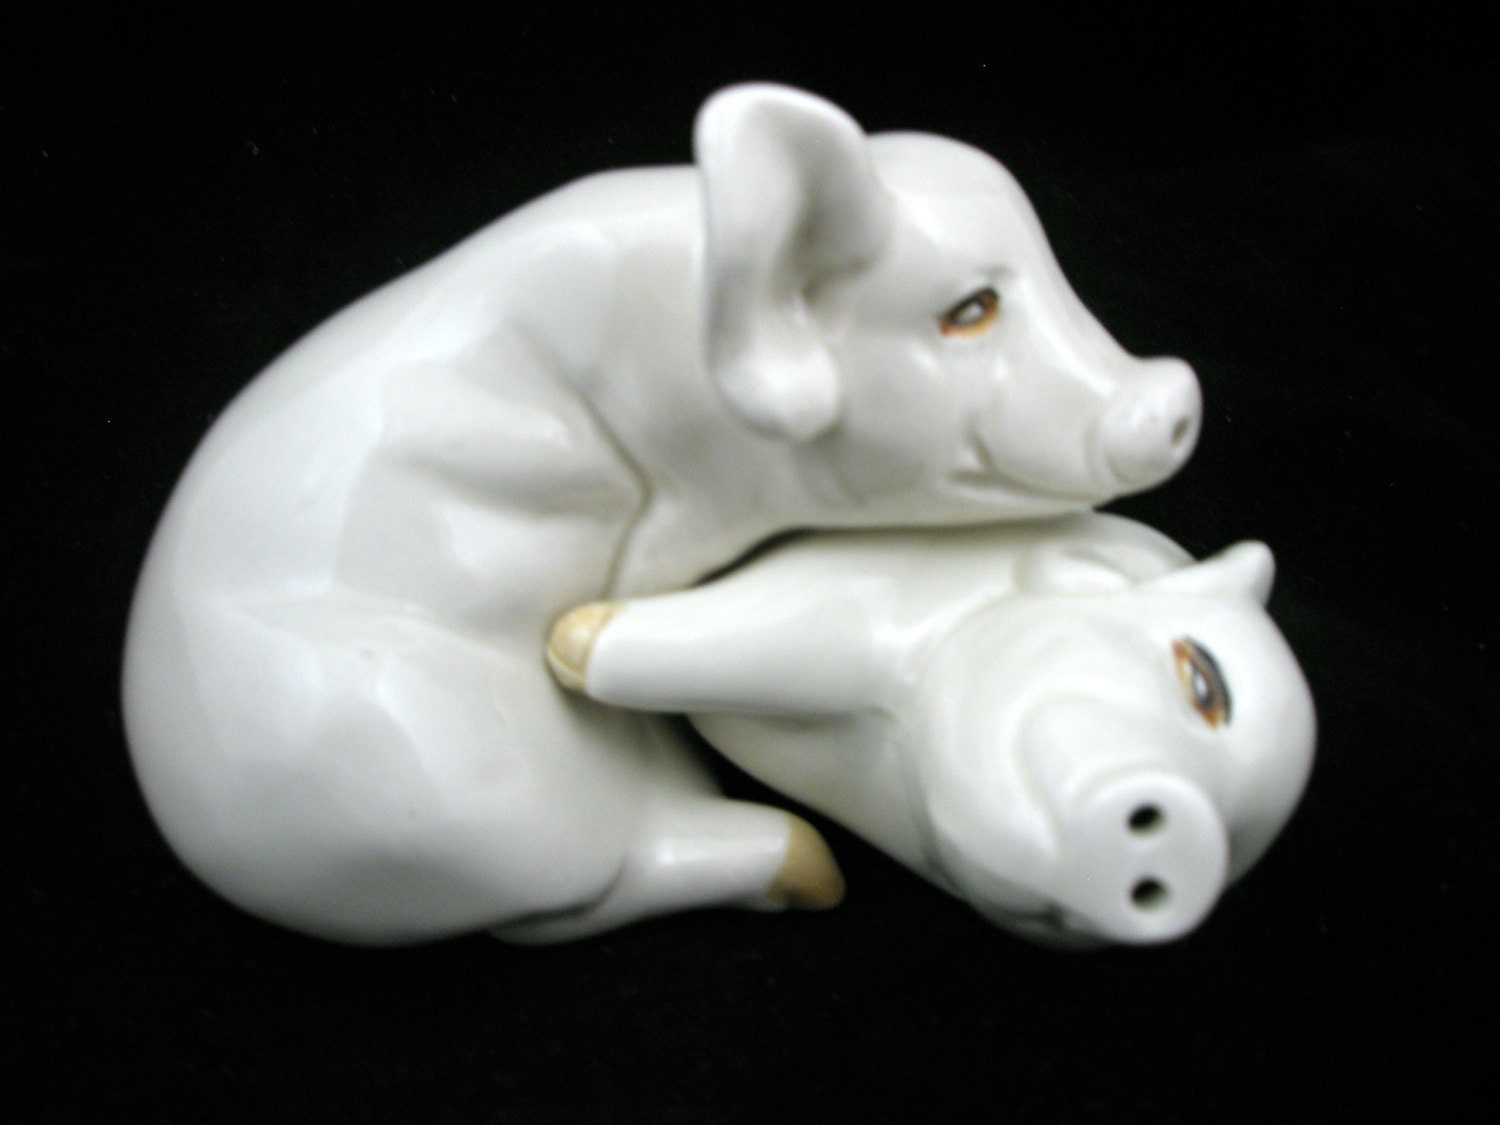 Hugging pigs salt and pepper shakers set fitz and floyd 1976 - Hugging salt and pepper shakers ...